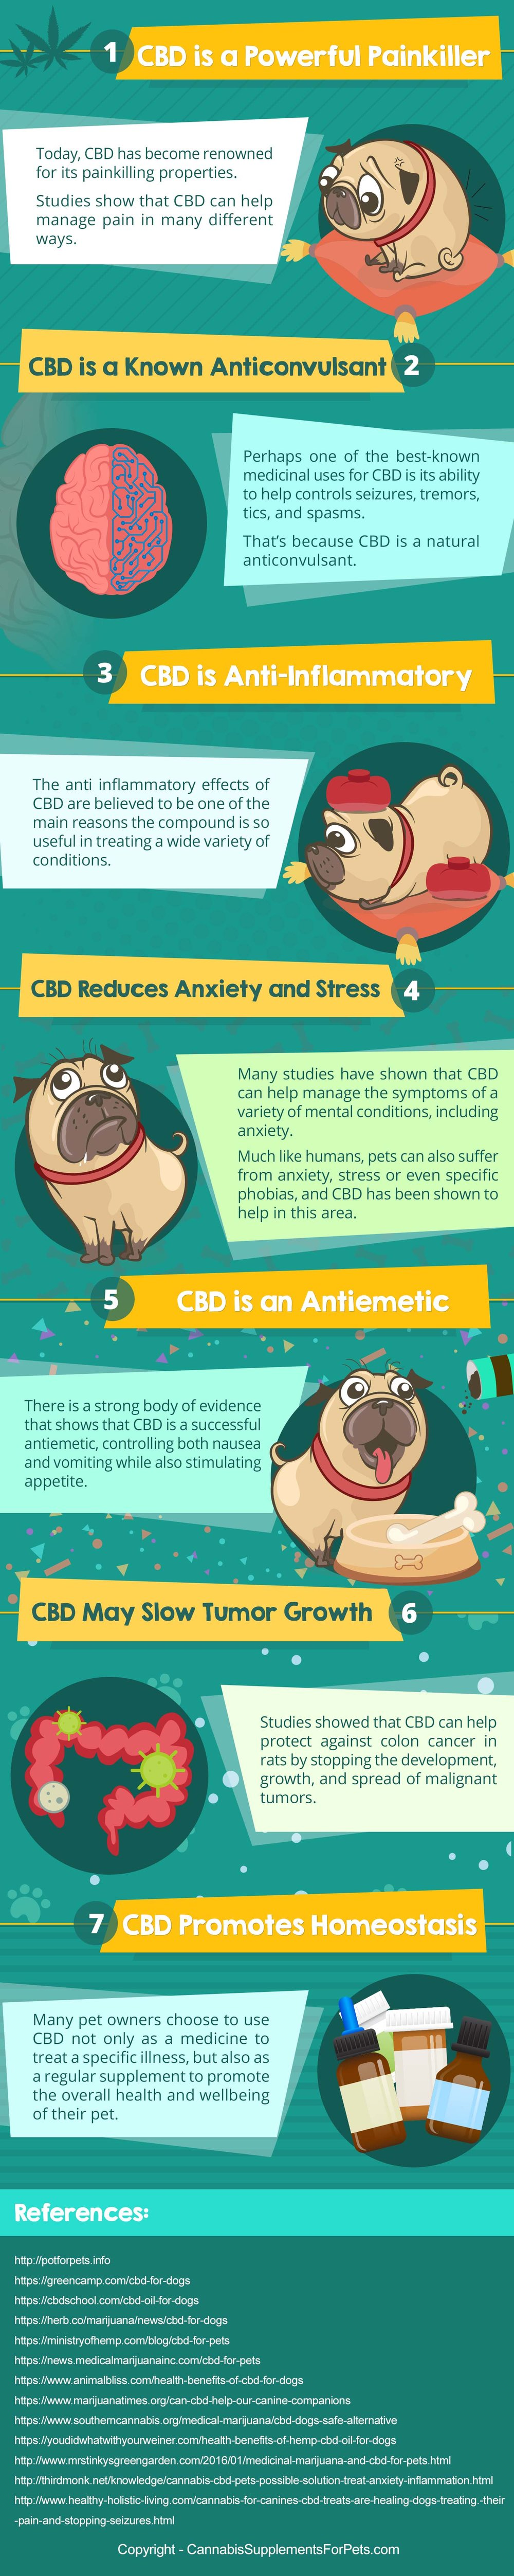 benefits-of-cbd-for-dogs-infographic.jpg